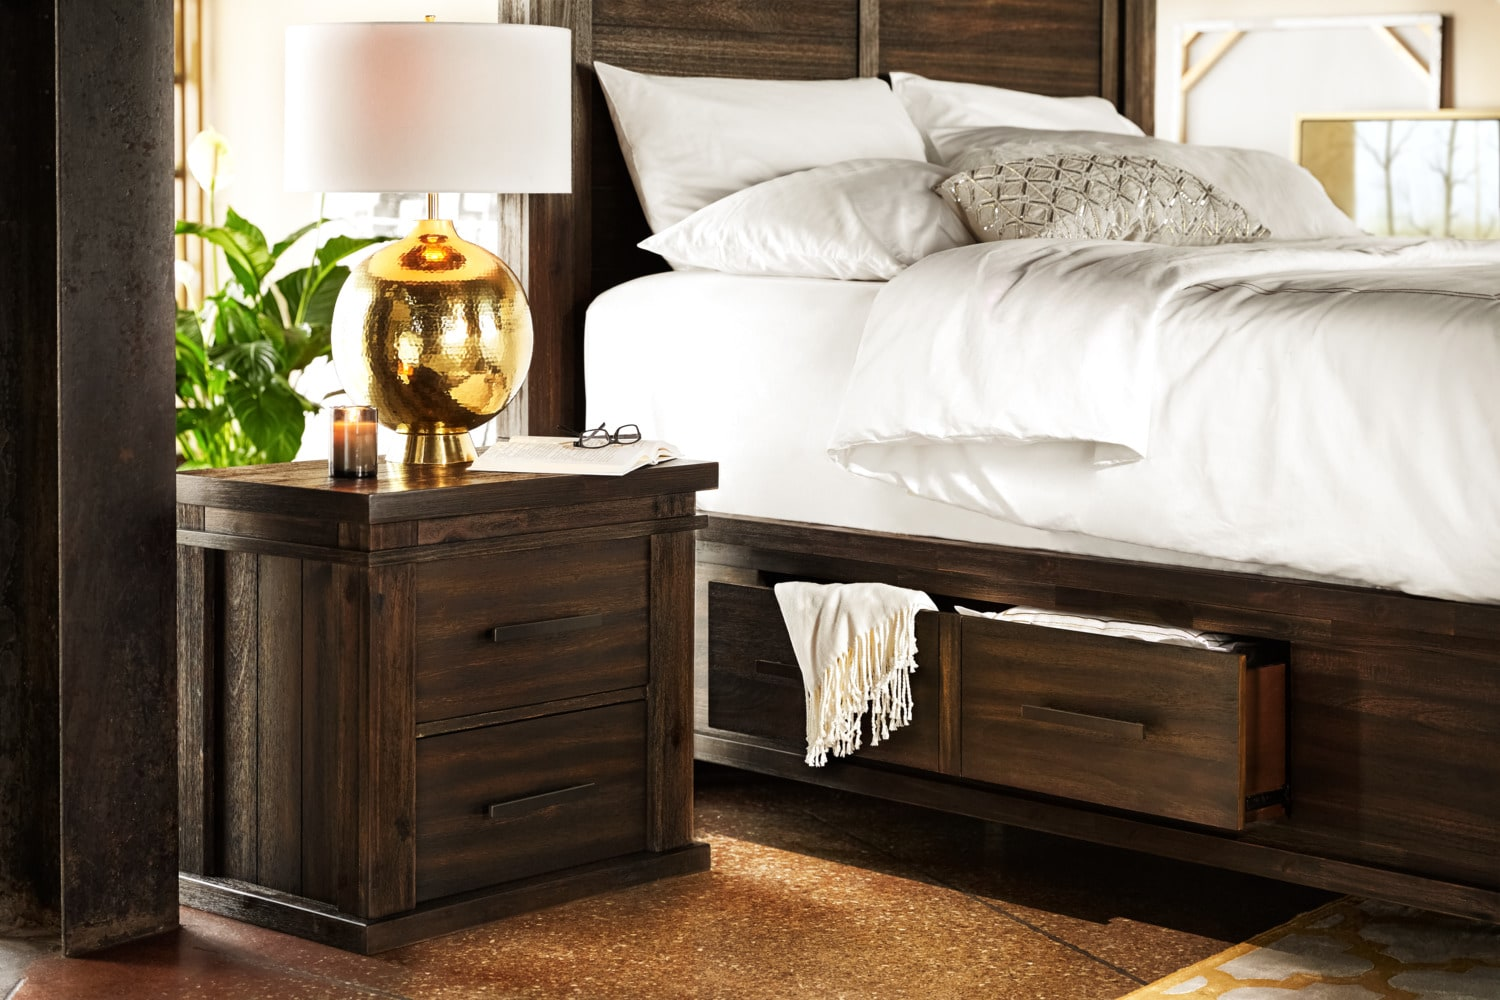 Tribeca King Storage Bed w 4 Underbed Drawers  Tobacco  Value City Furniture and Mattresses